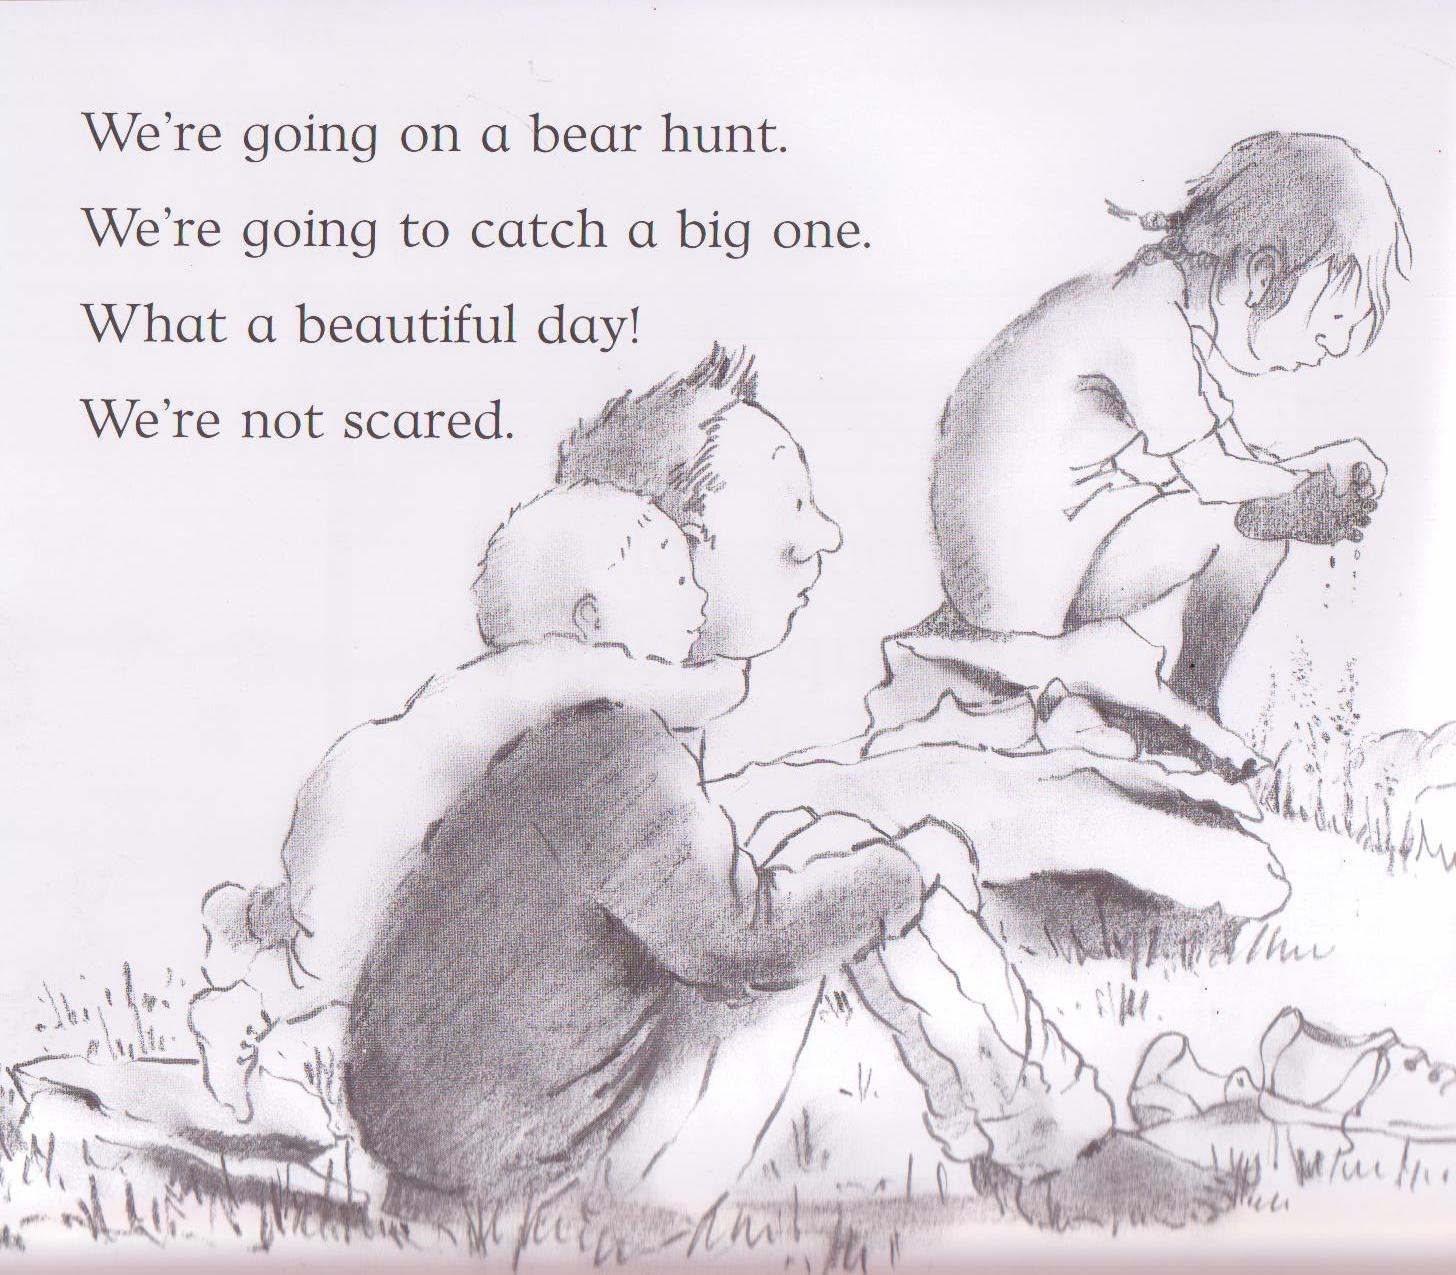 A Bear Hunt And just as great scenes of